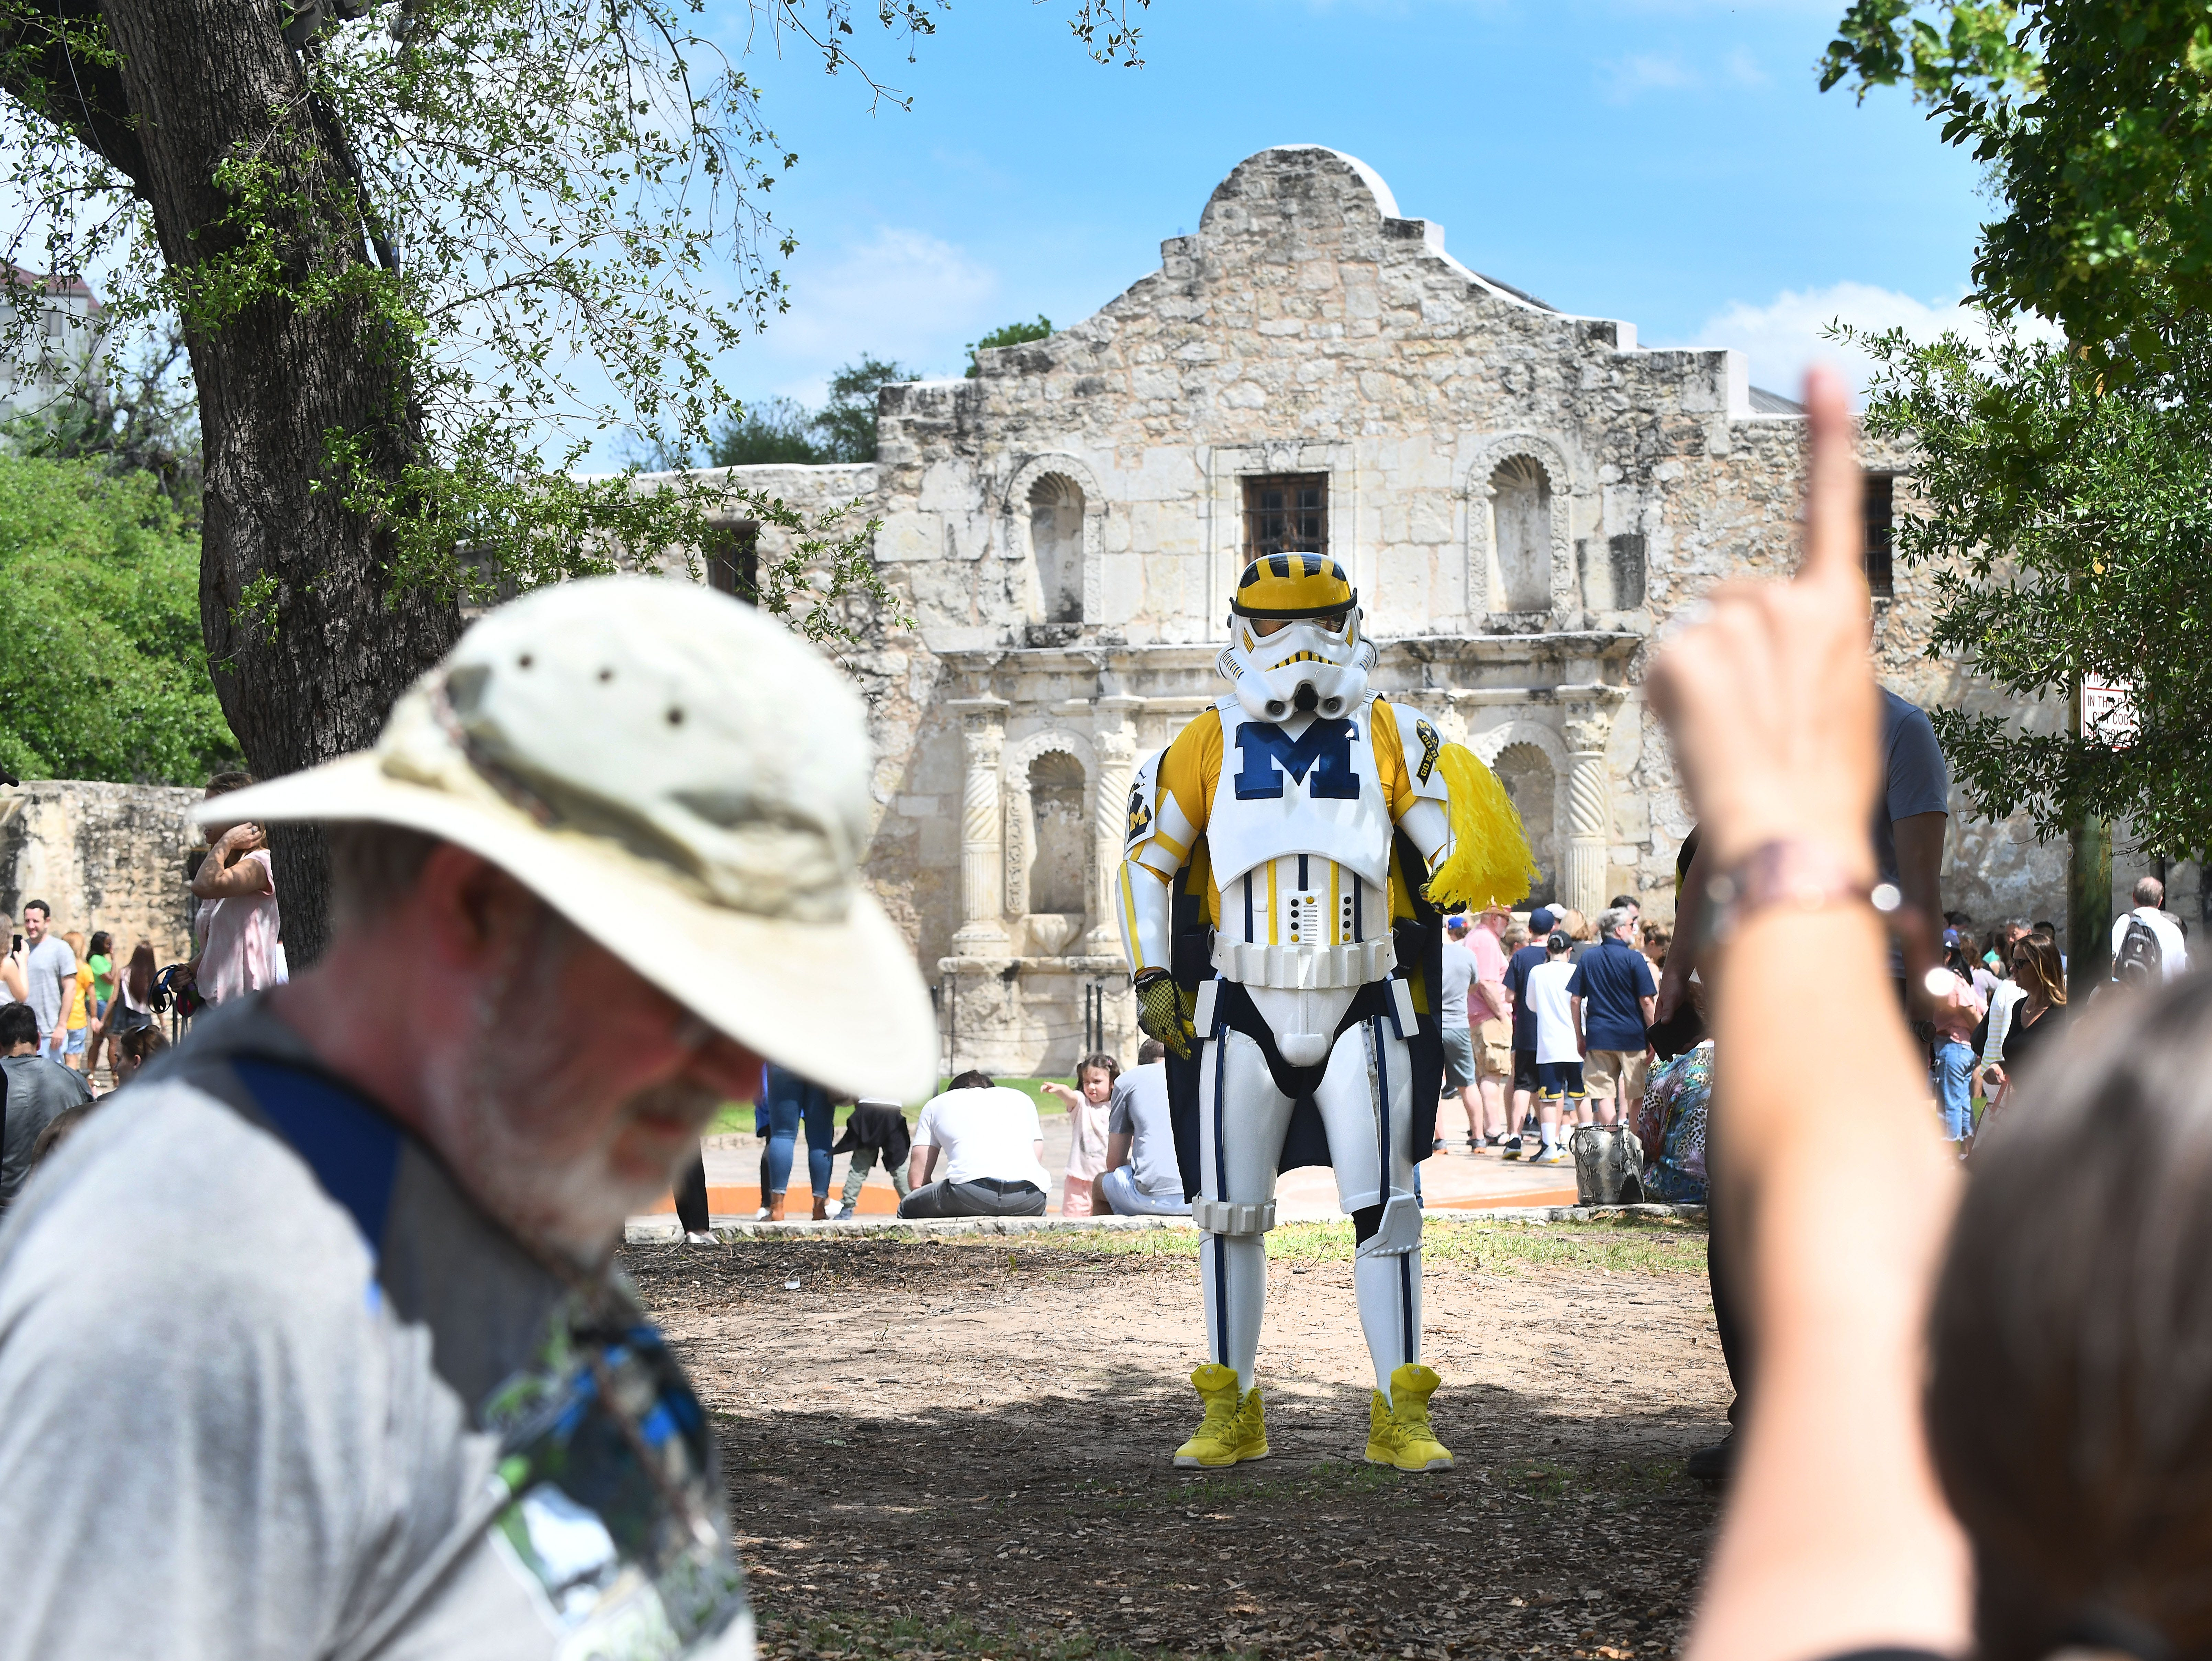 Jon Leopold of the 501st Legion visits the Alamo, to the delight of Michigan fans, in San Antonio, Texas on April 1, 2018.  The fans were in town to watch Michigan play in the NCAA basketball finals.